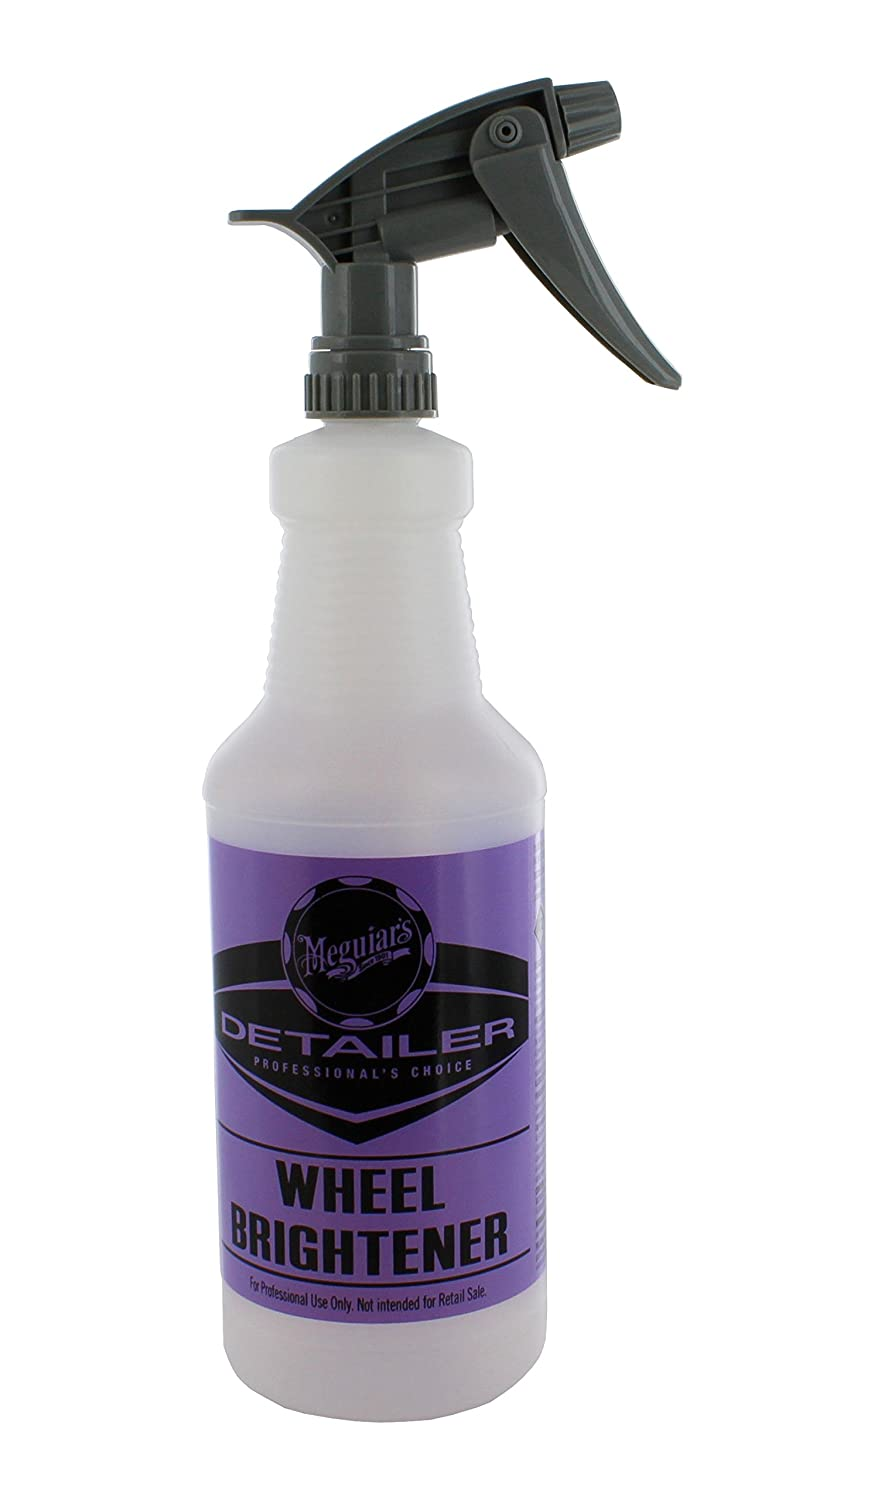 Meguiar's D20140 Wheel Brightener Bottle - 32 oz. Capacity W/ Meguiar's D110542 Chemical Resistant Sprayer Meguiars